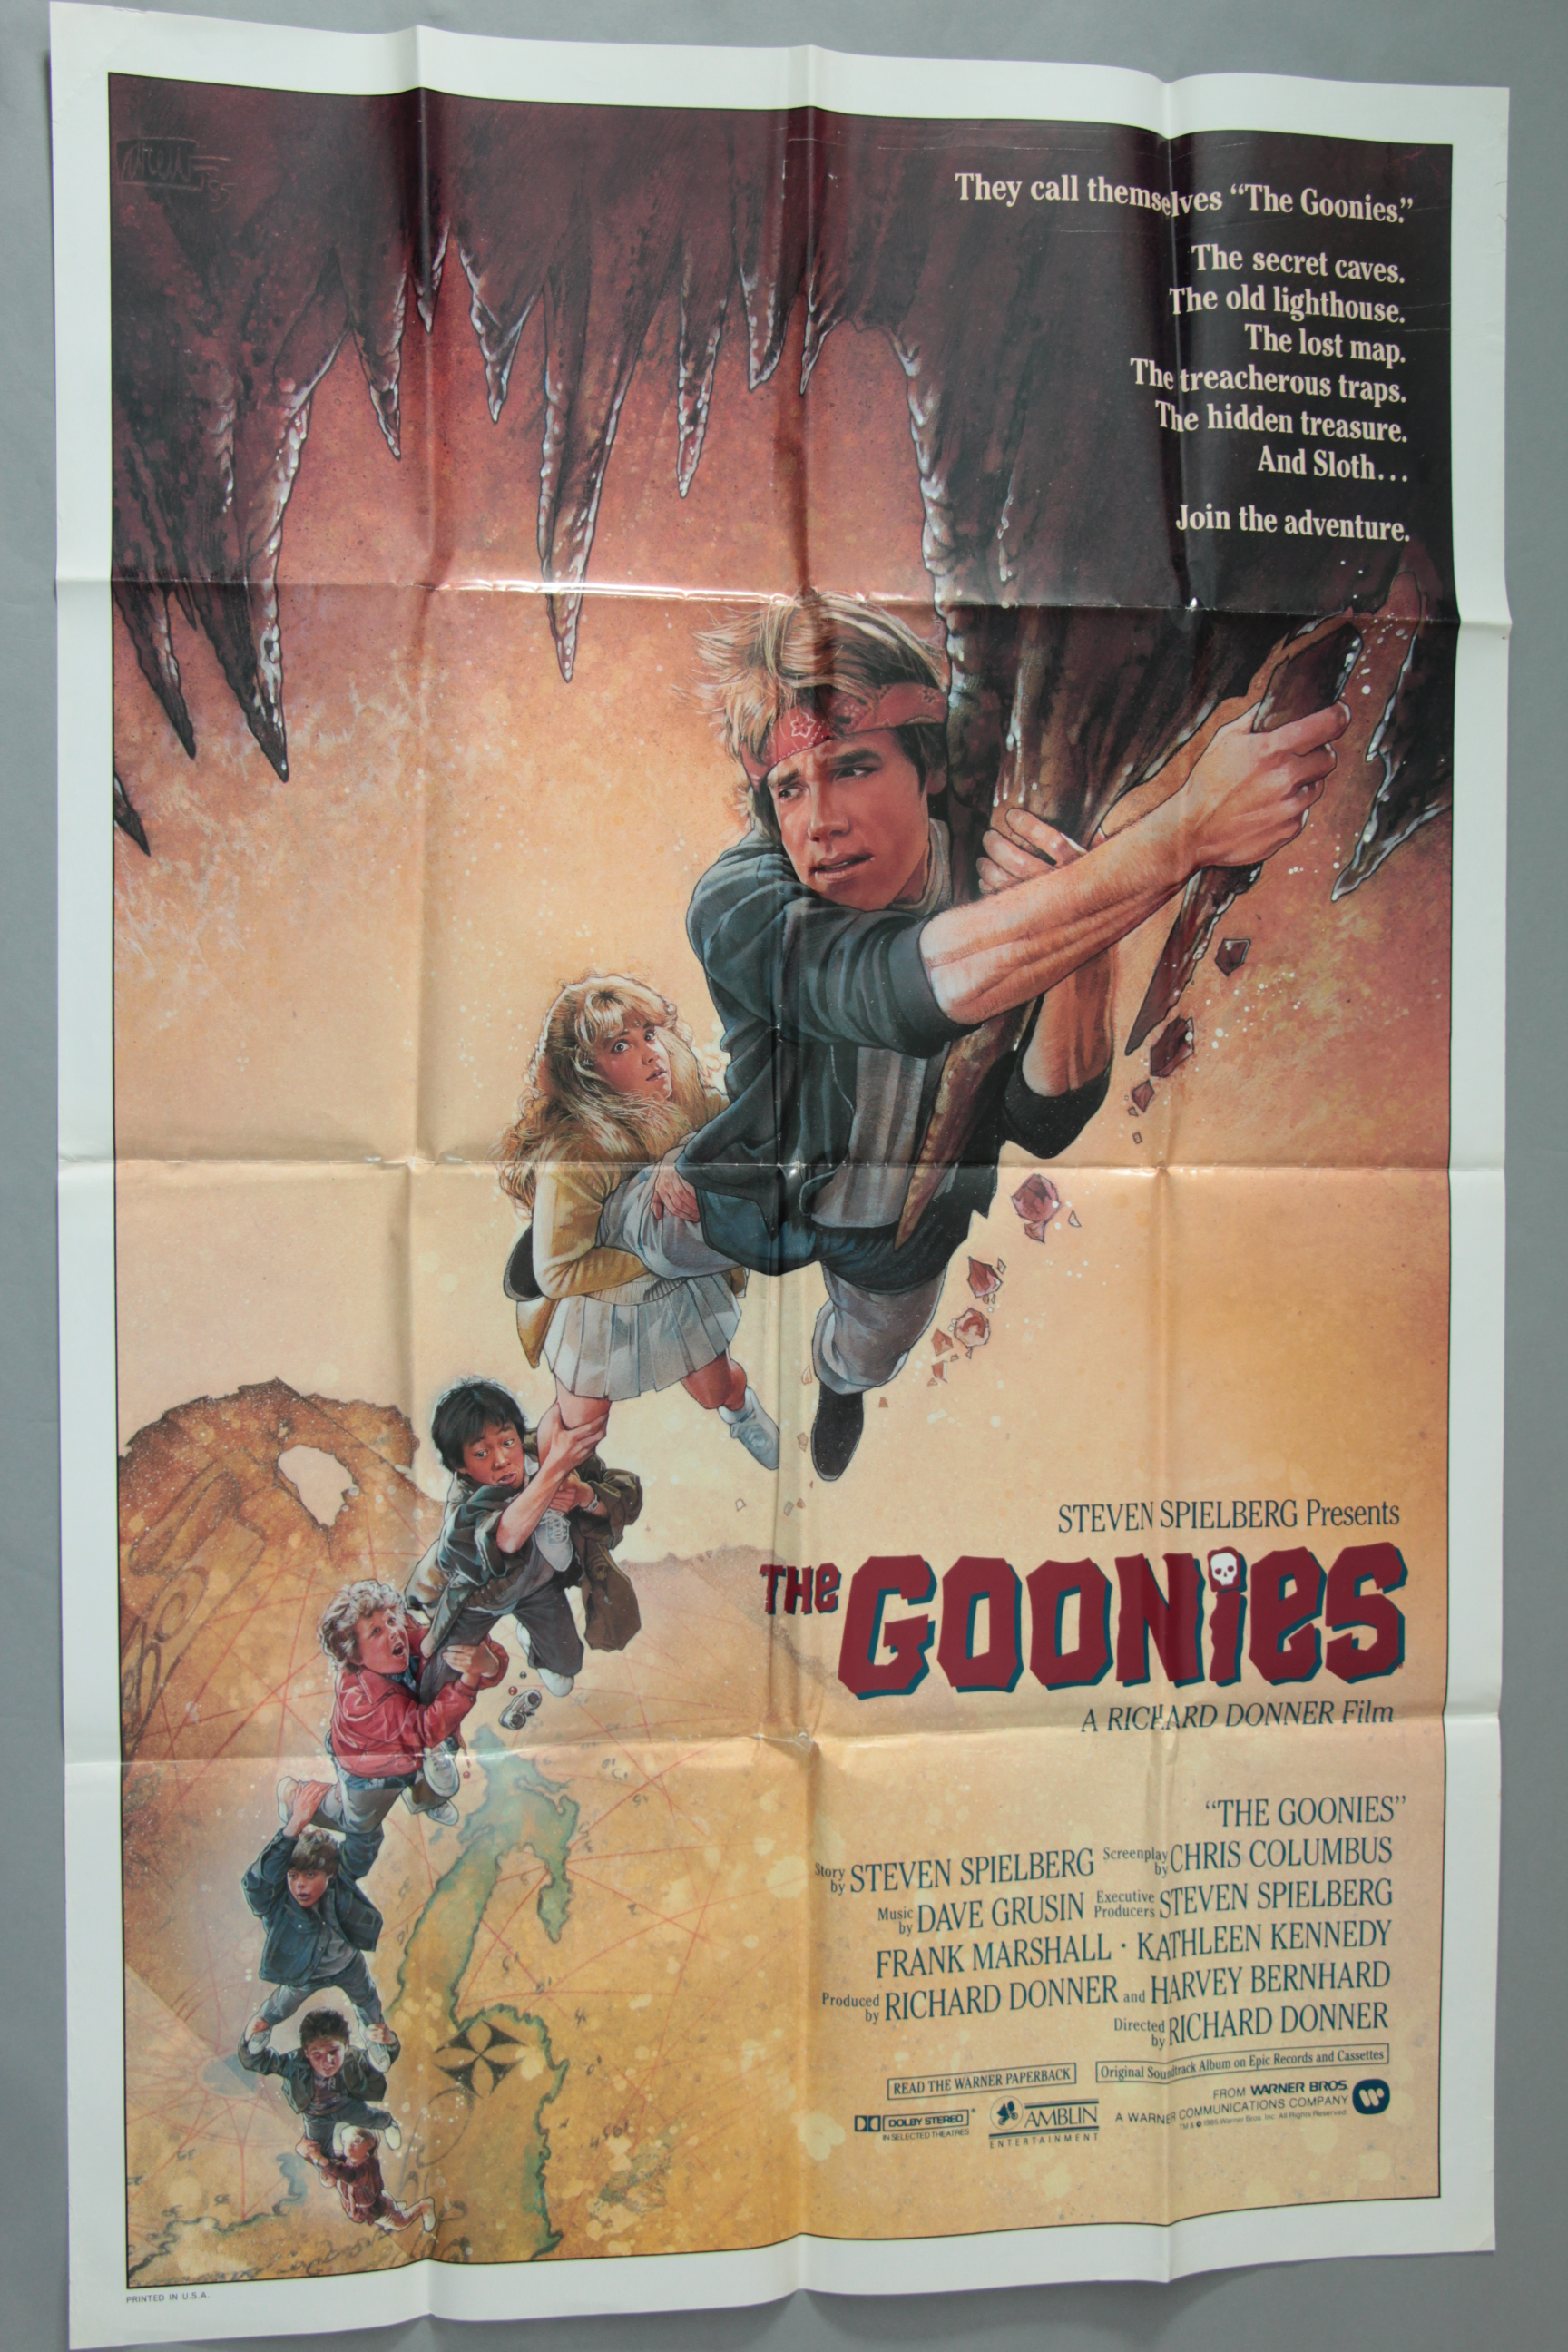 Lot 6 - The Goonies 1985 US one sheet film poster from Spielberg with art by Drew Struzan,